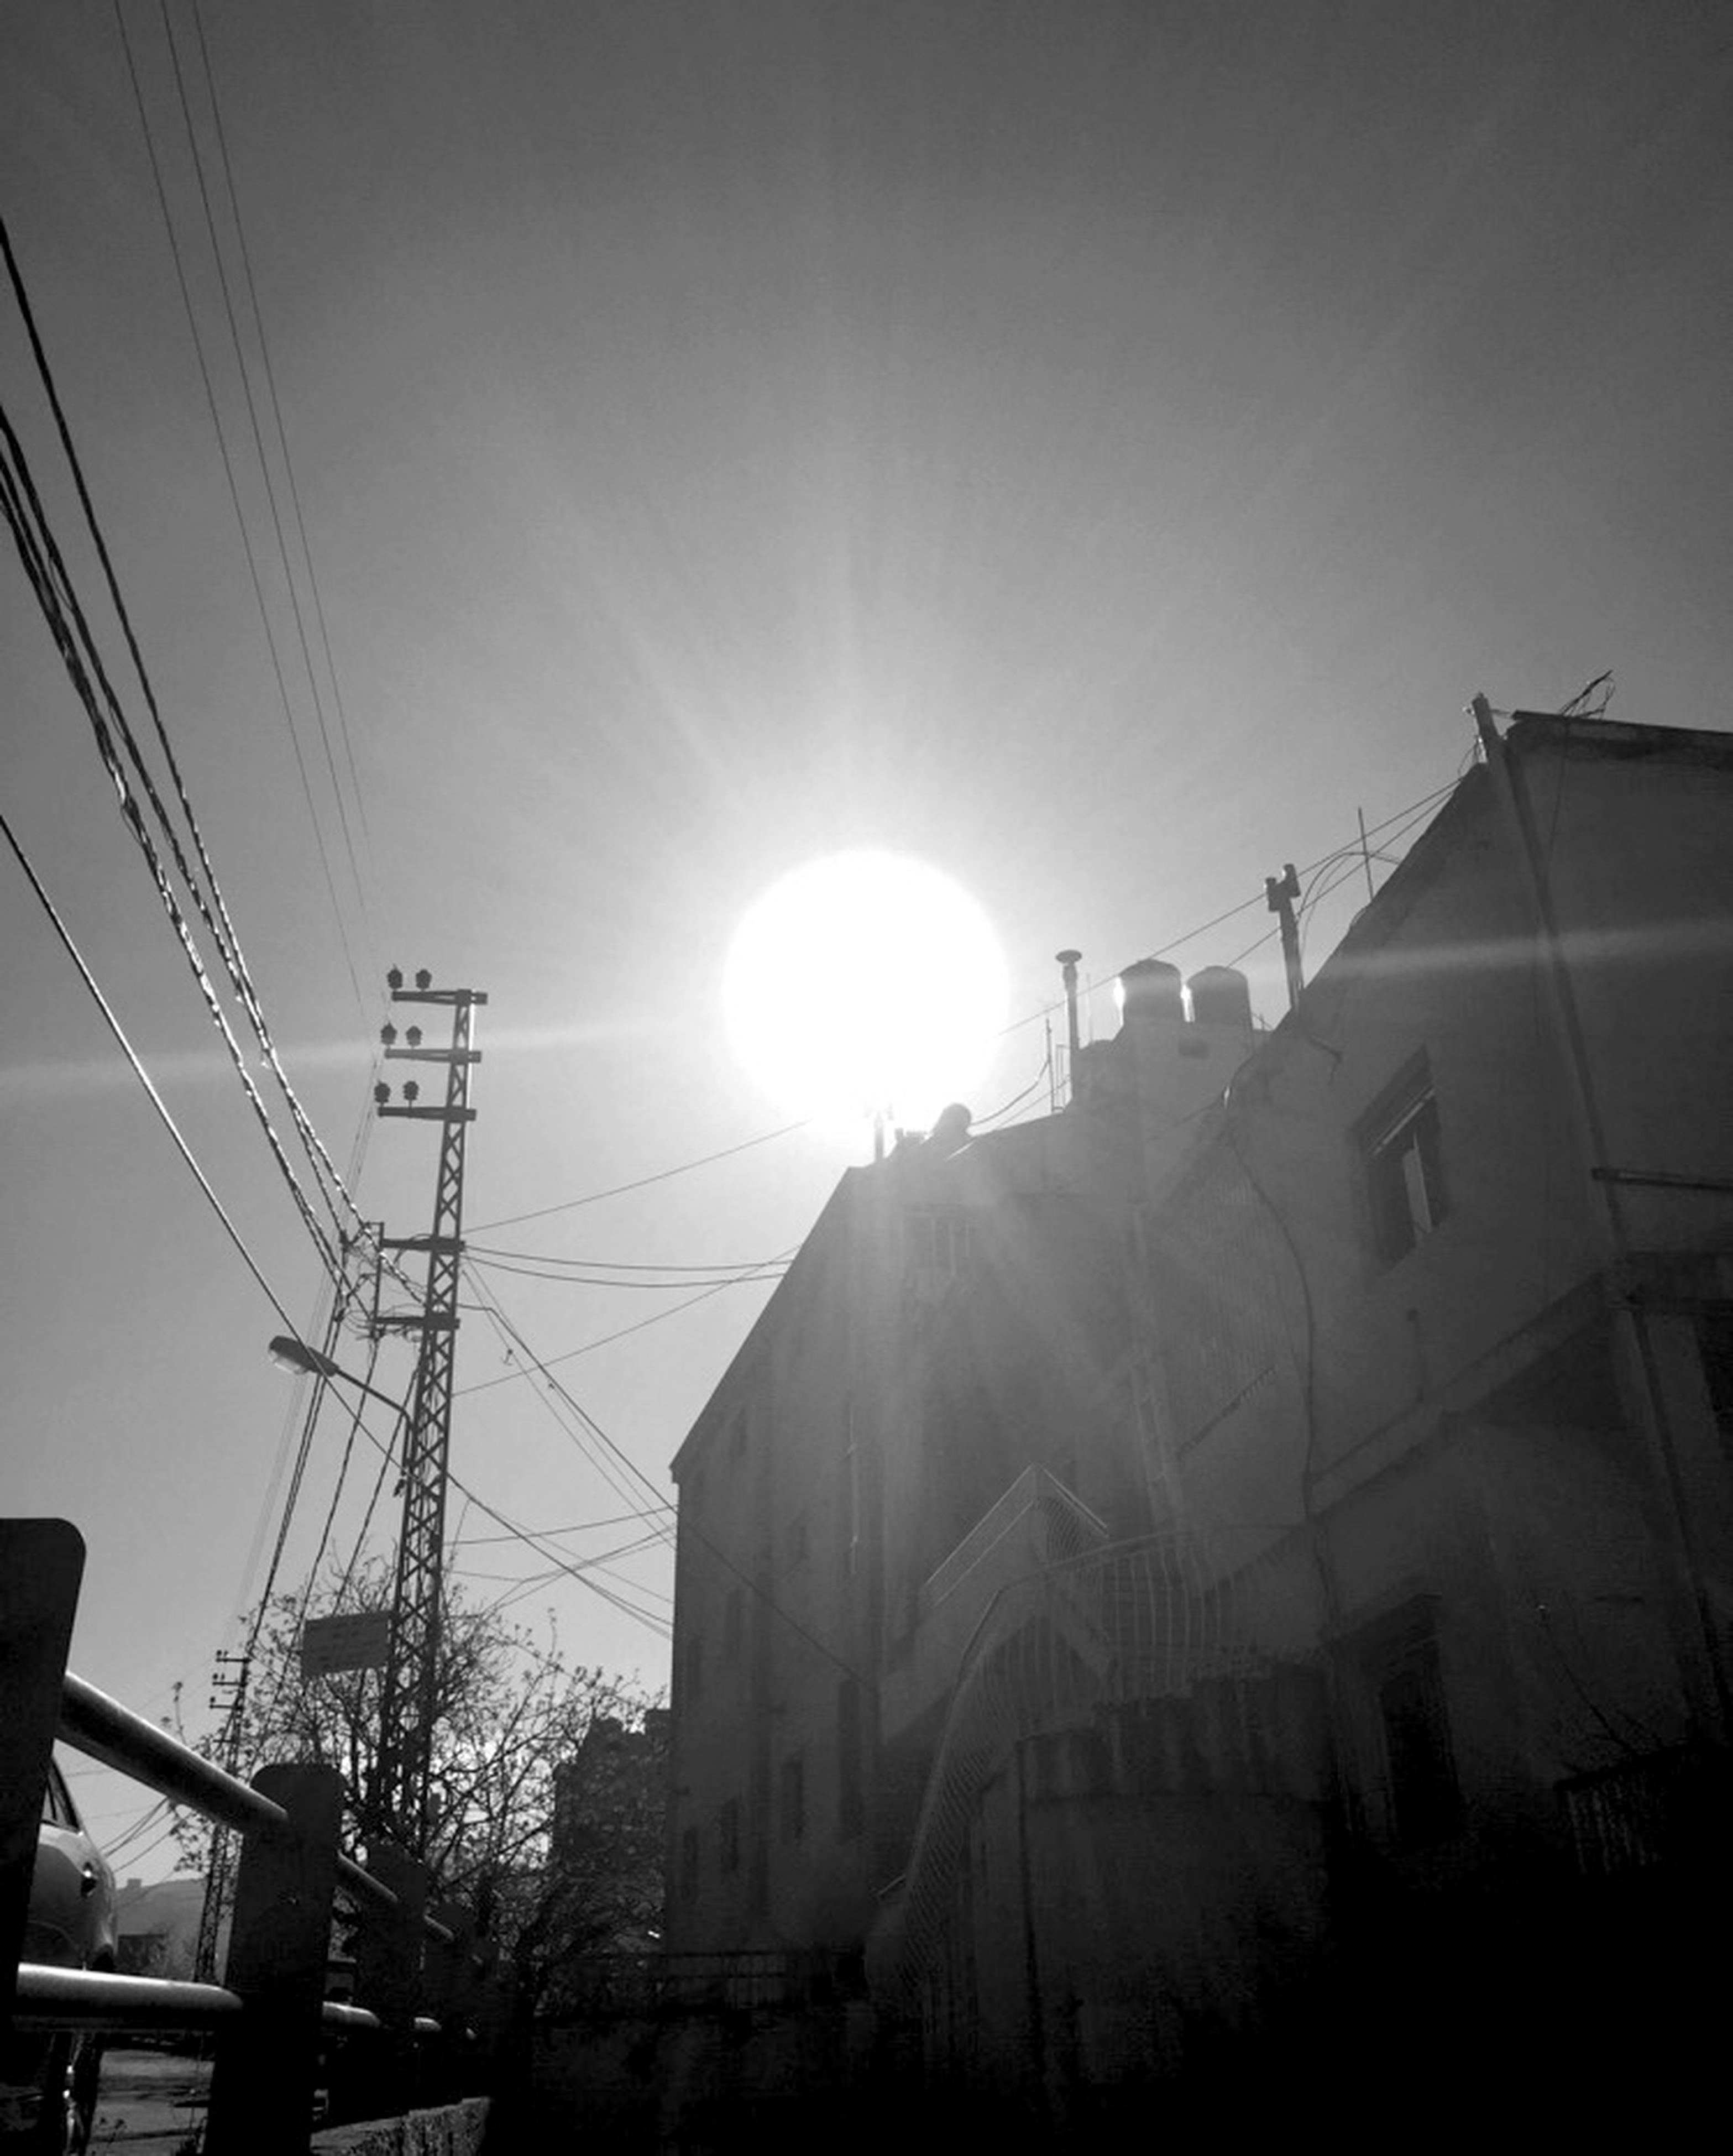 architecture, built structure, building exterior, sun, power line, low angle view, electricity pylon, sunbeam, sunlight, cable, electricity, lens flare, connection, sky, power supply, silhouette, city, building, fuel and power generation, power cable